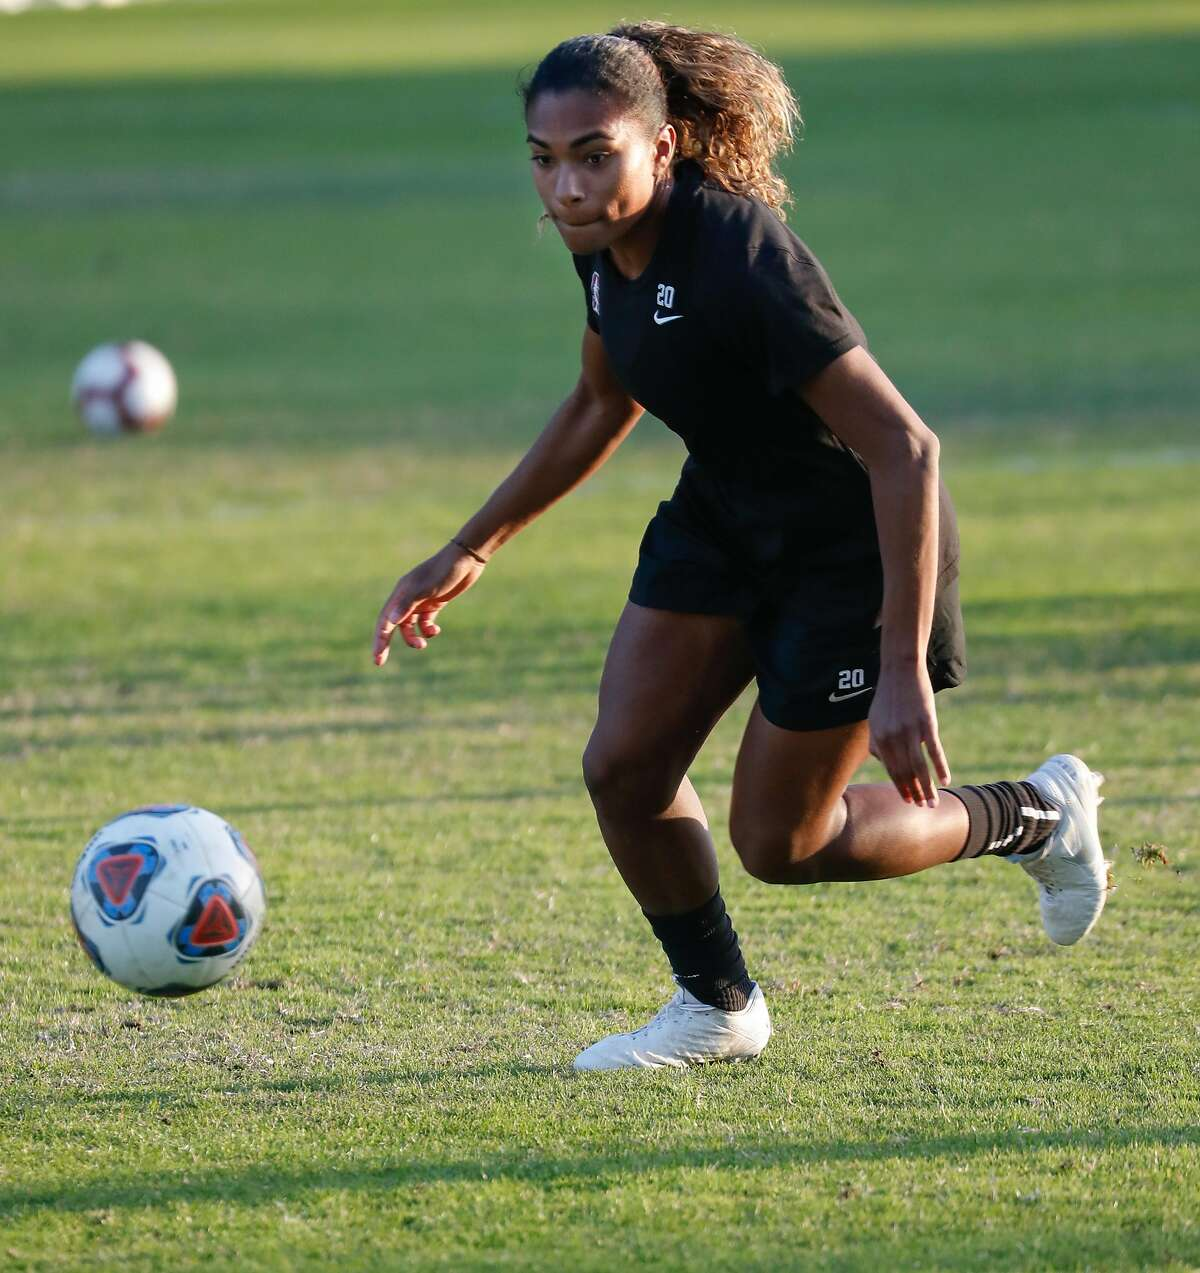 Stanford soccer player Catarina Macario goes after the ball during practice with her team at Stanford University on Thursday, Nov. 21, 2019, in Stanford, Calif.